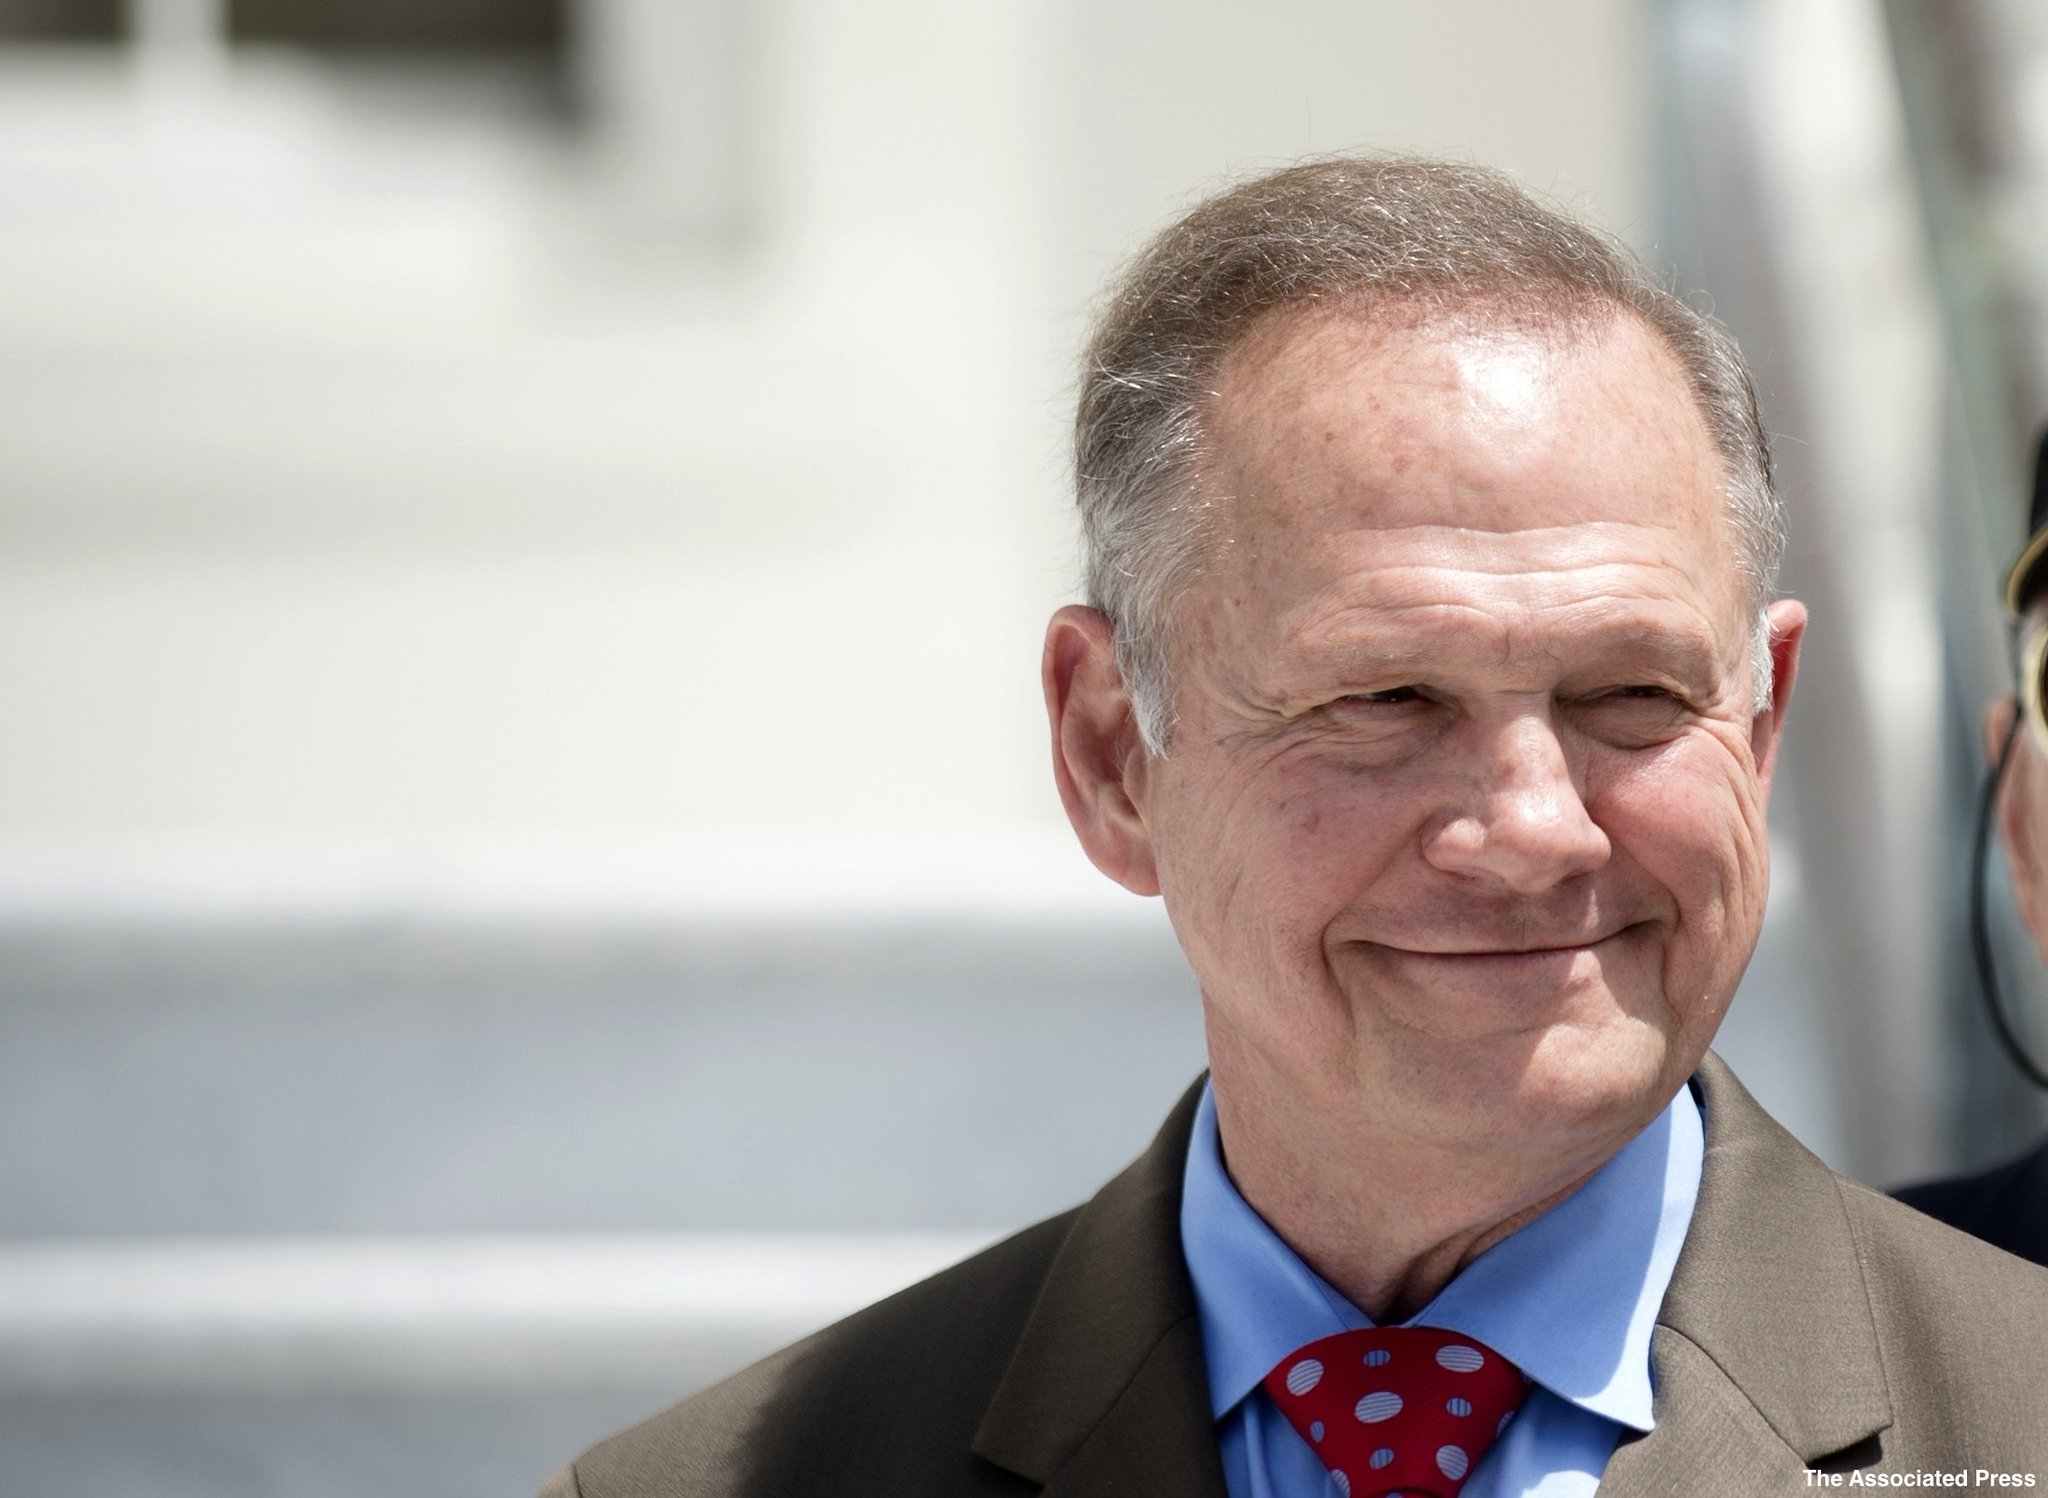 Alabama Senate candidate Roy Moore tweets affirmation of his 'reds, yellows' remarks. https://t.co/O8kWLRBXvo https://t.co/6qvZsVobkb